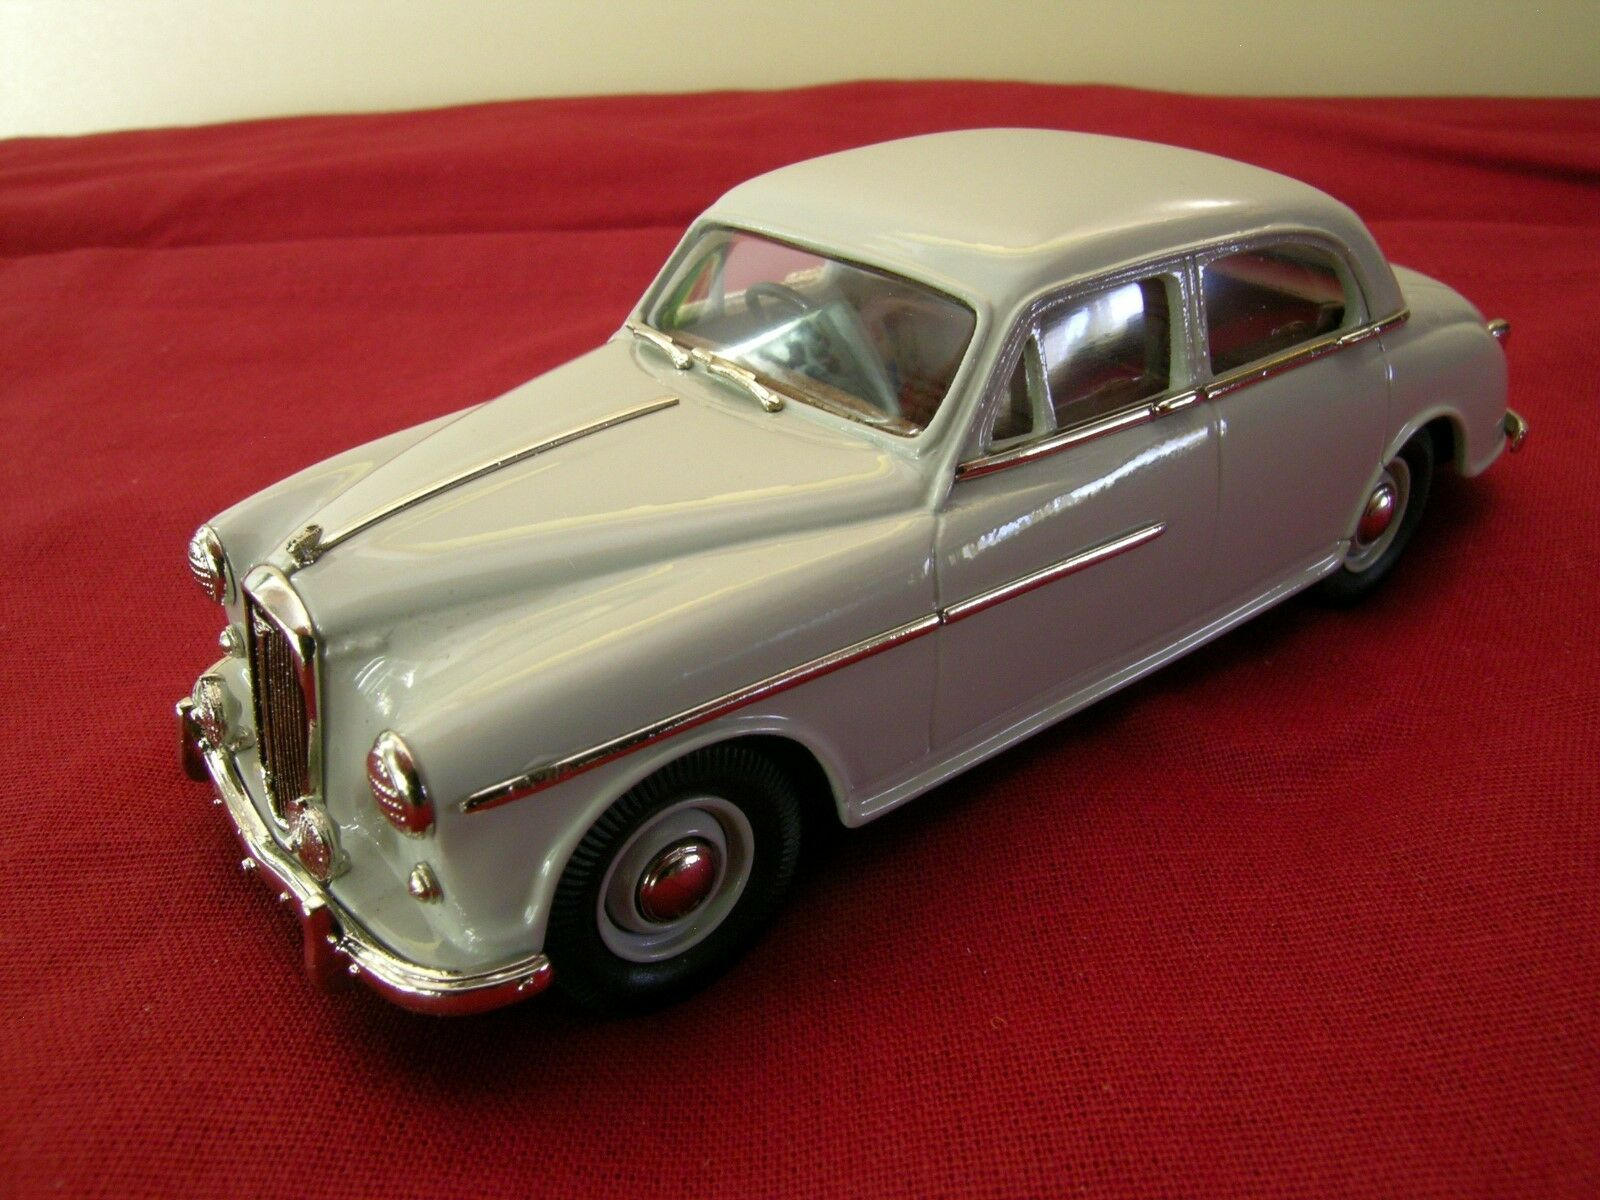 LANSDOWNE MODELS LDM60 WOLSELEY 6 90 SERIES 1 1954 COLOUR COLOUR COLOUR GREY + BOX SCALE 1 43 faa3bd